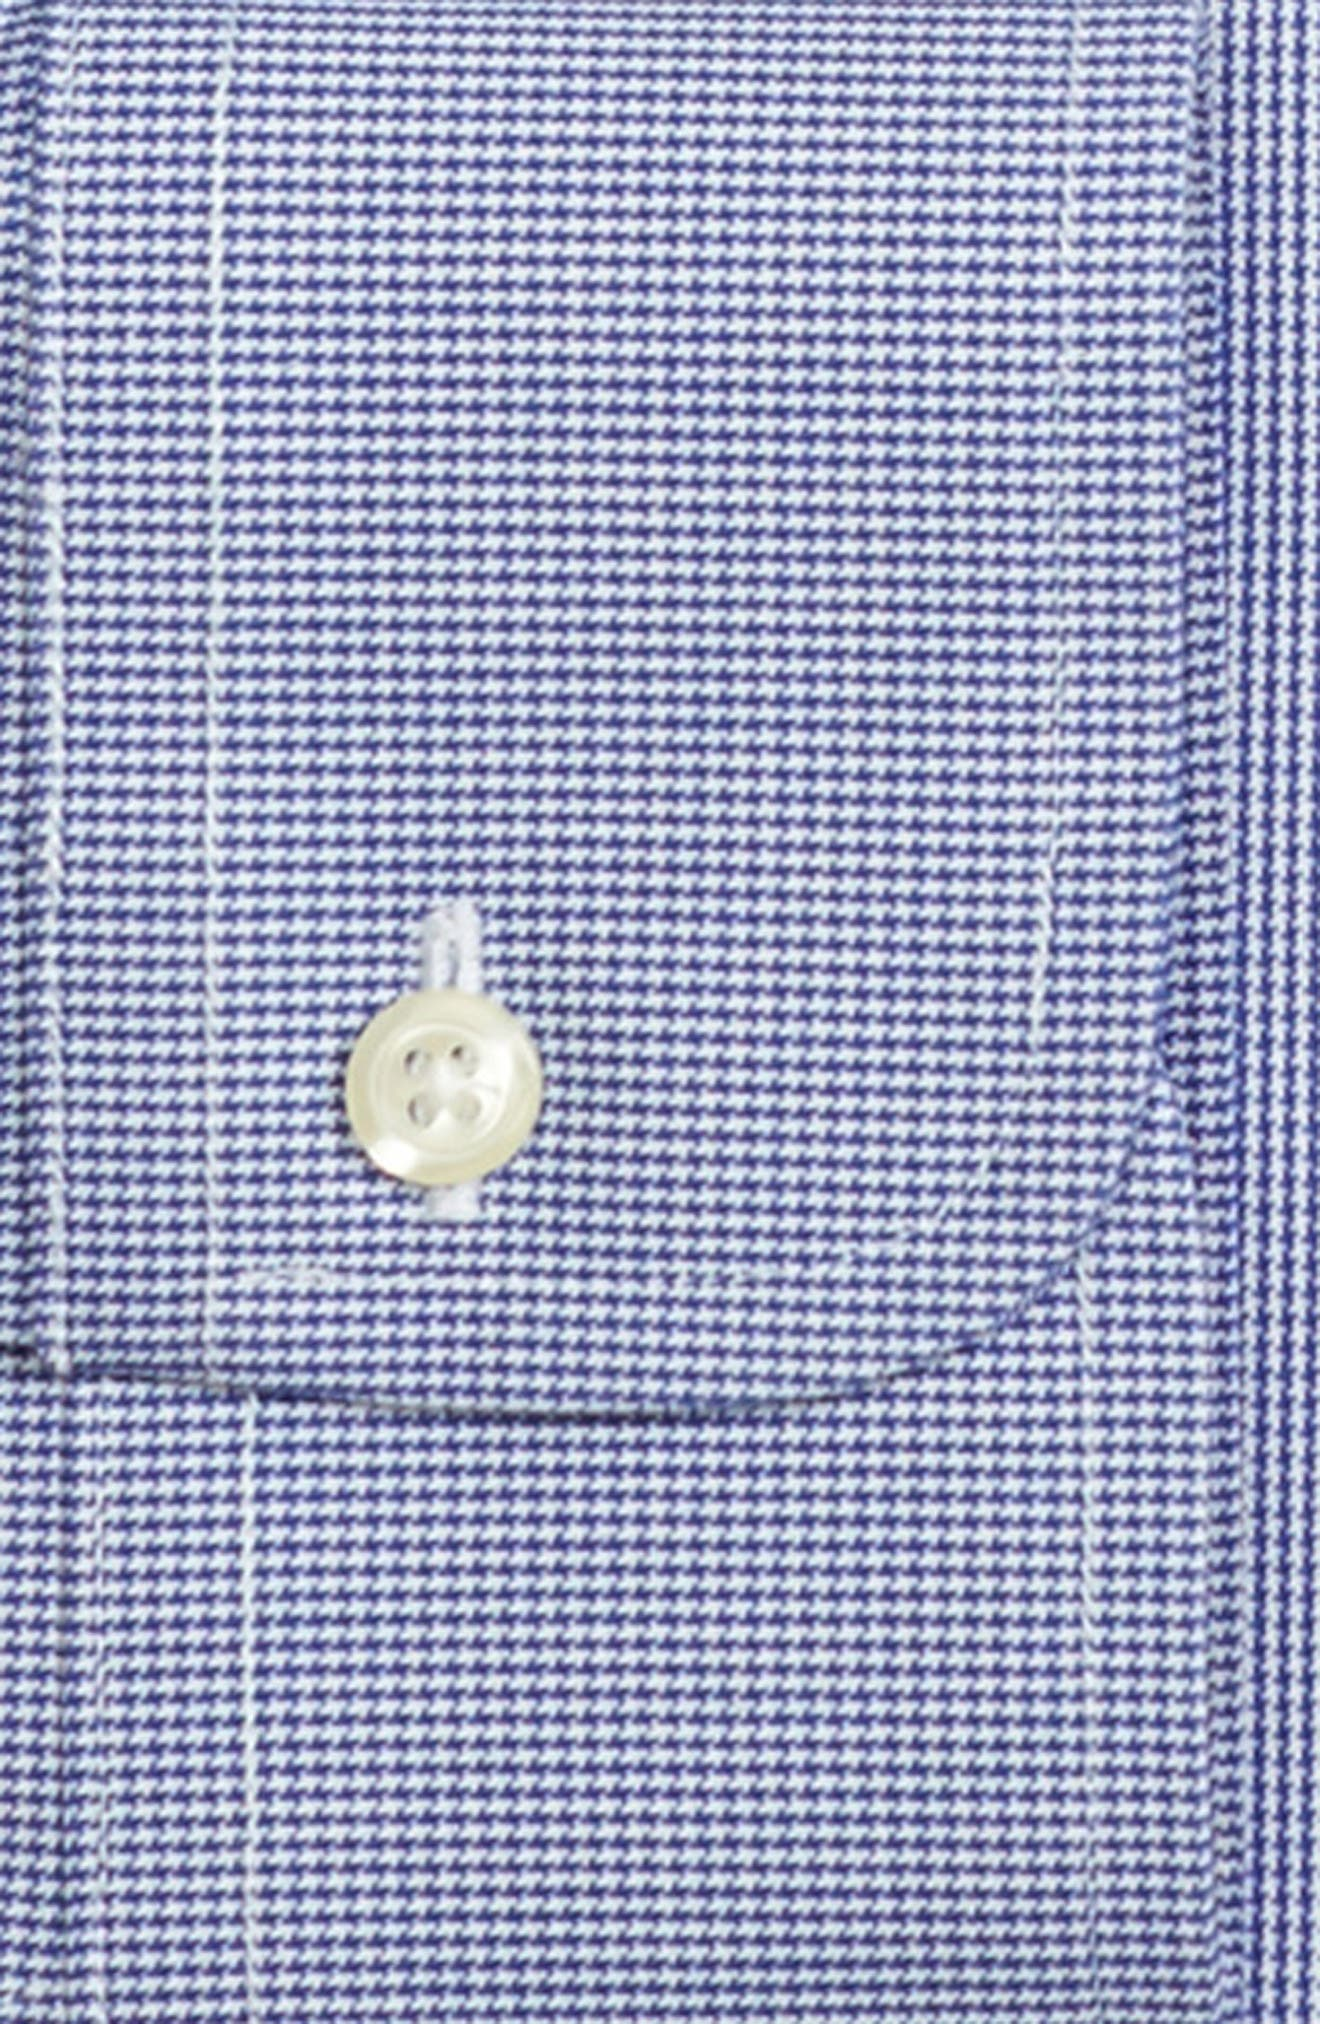 Trim Fit Houndstooth Dress Shirt,                             Alternate thumbnail 2, color,                             BLUE